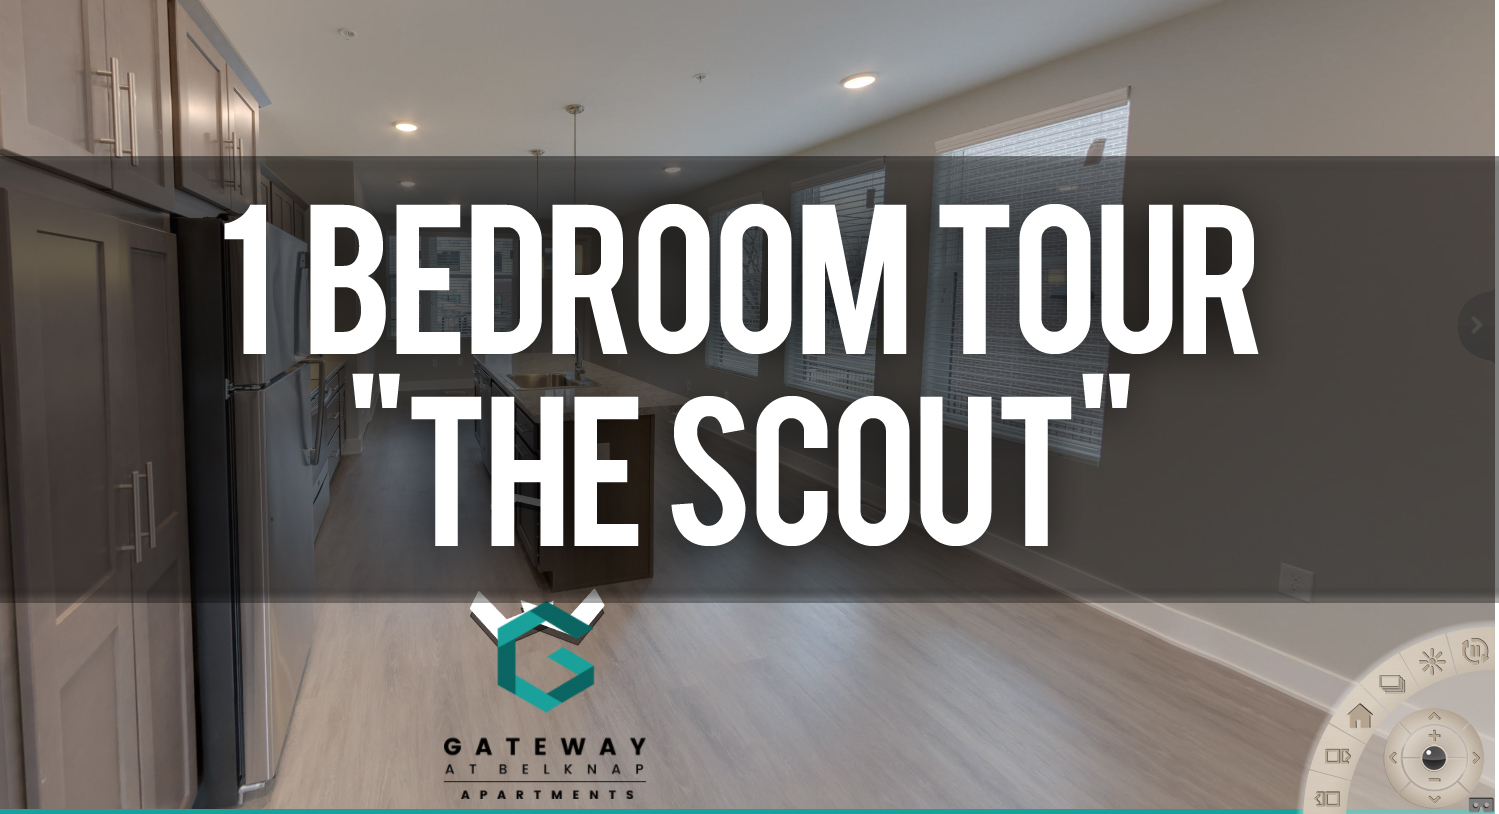 Virtual Tour of 1 Bedroom Scout Floorplan at Gateway at Belknap Apartments